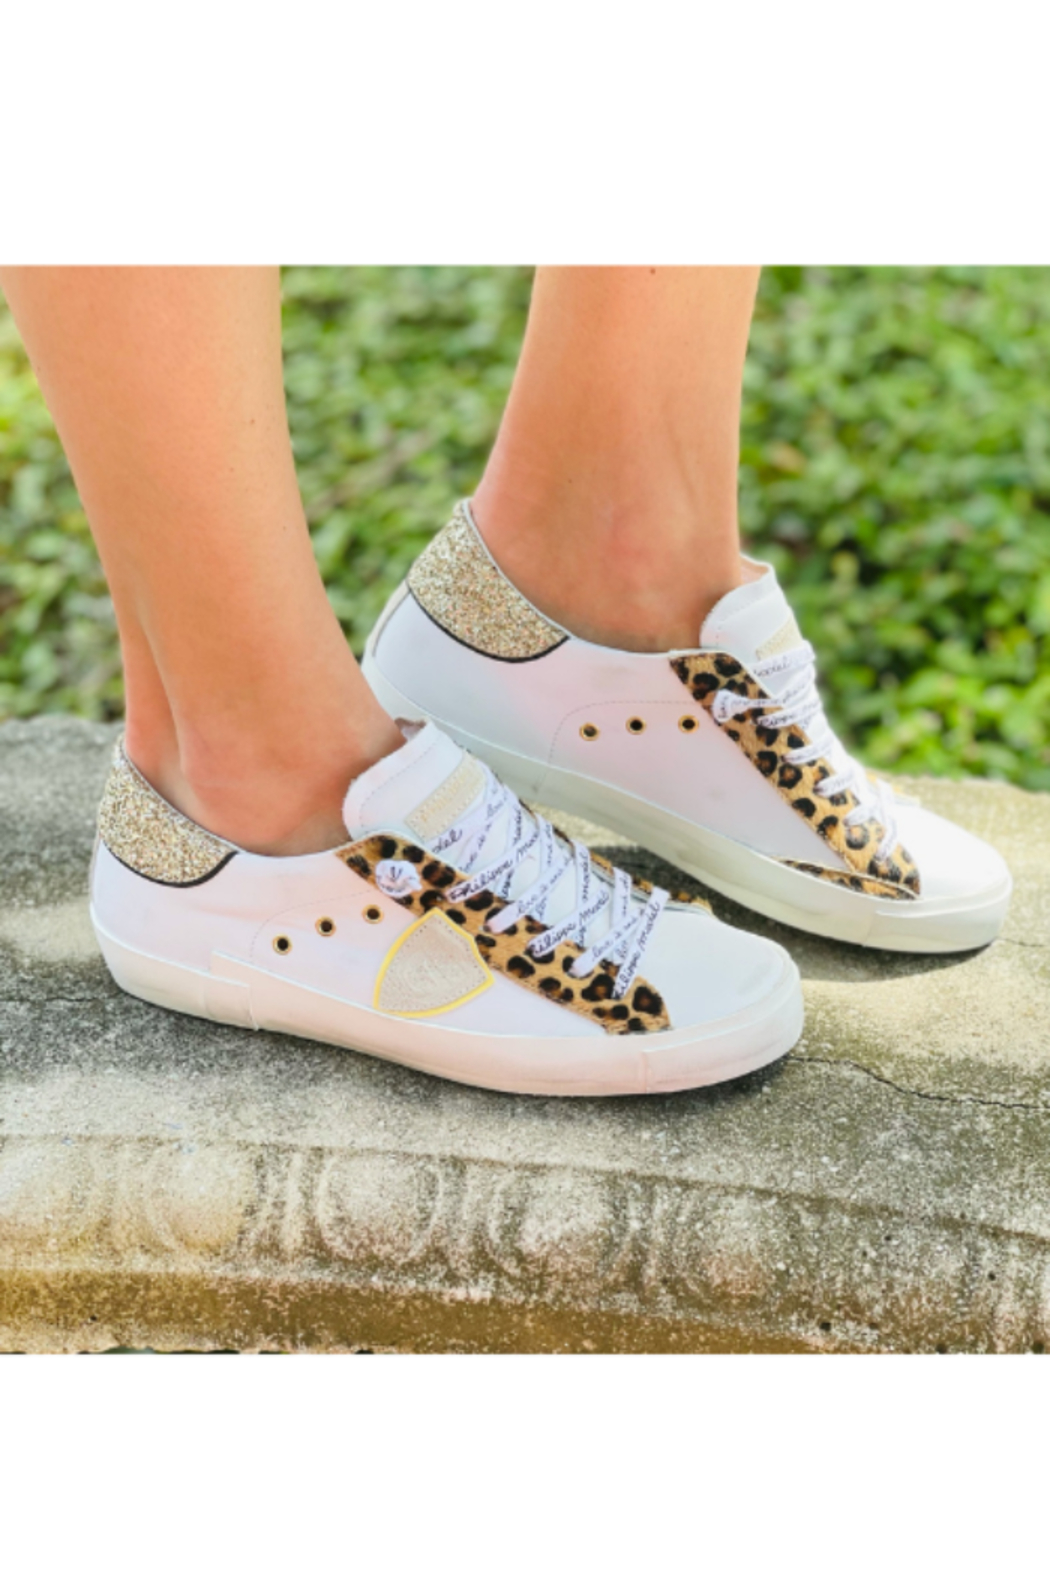 Phillippe Model Cheetah Low Top with Glitter - Main Image